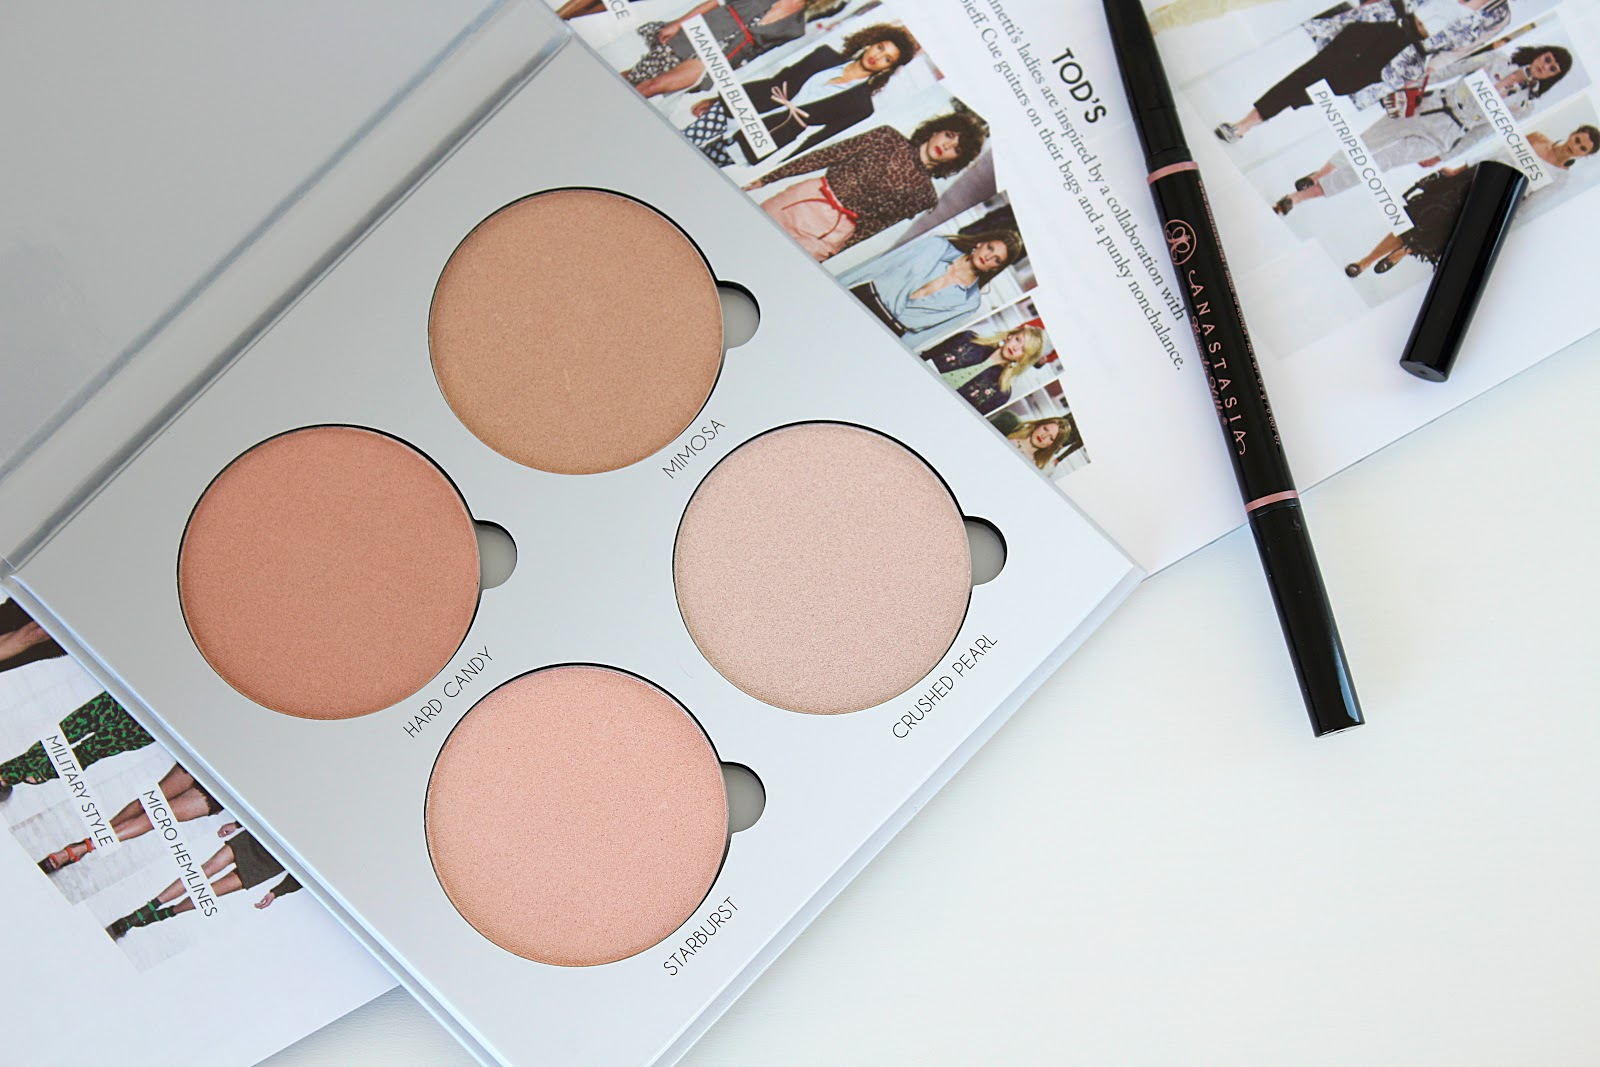 Anastasia Beverly Hills Glow Kit in Gleam and Brow Definer Swatches and Review